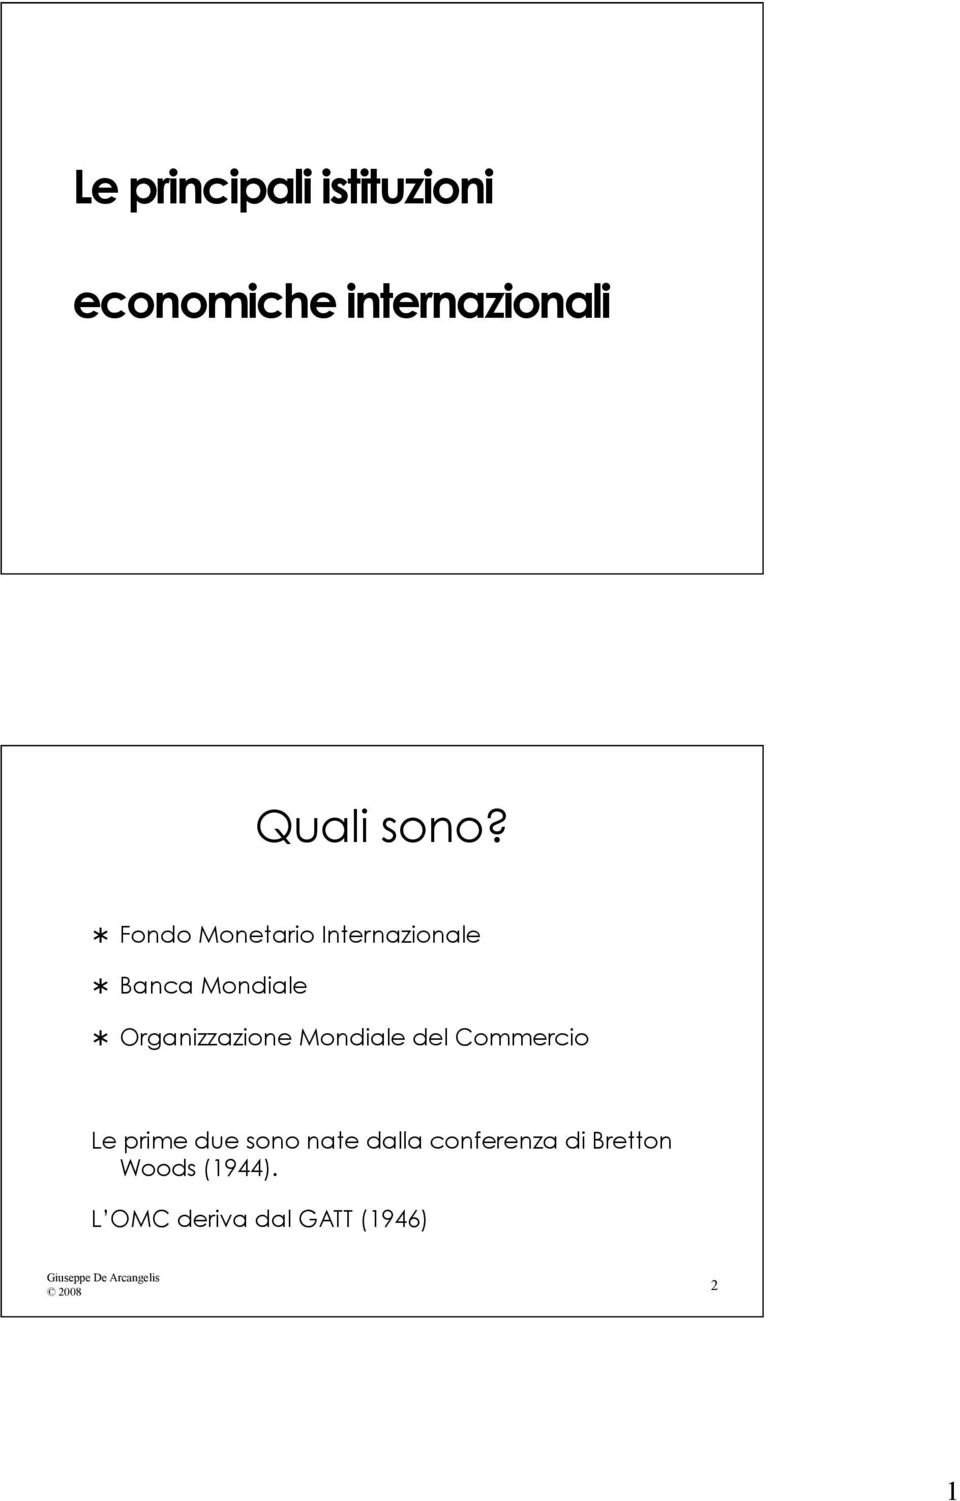 Mondiale del Commercio Le prime due sono nate dalla conferenza